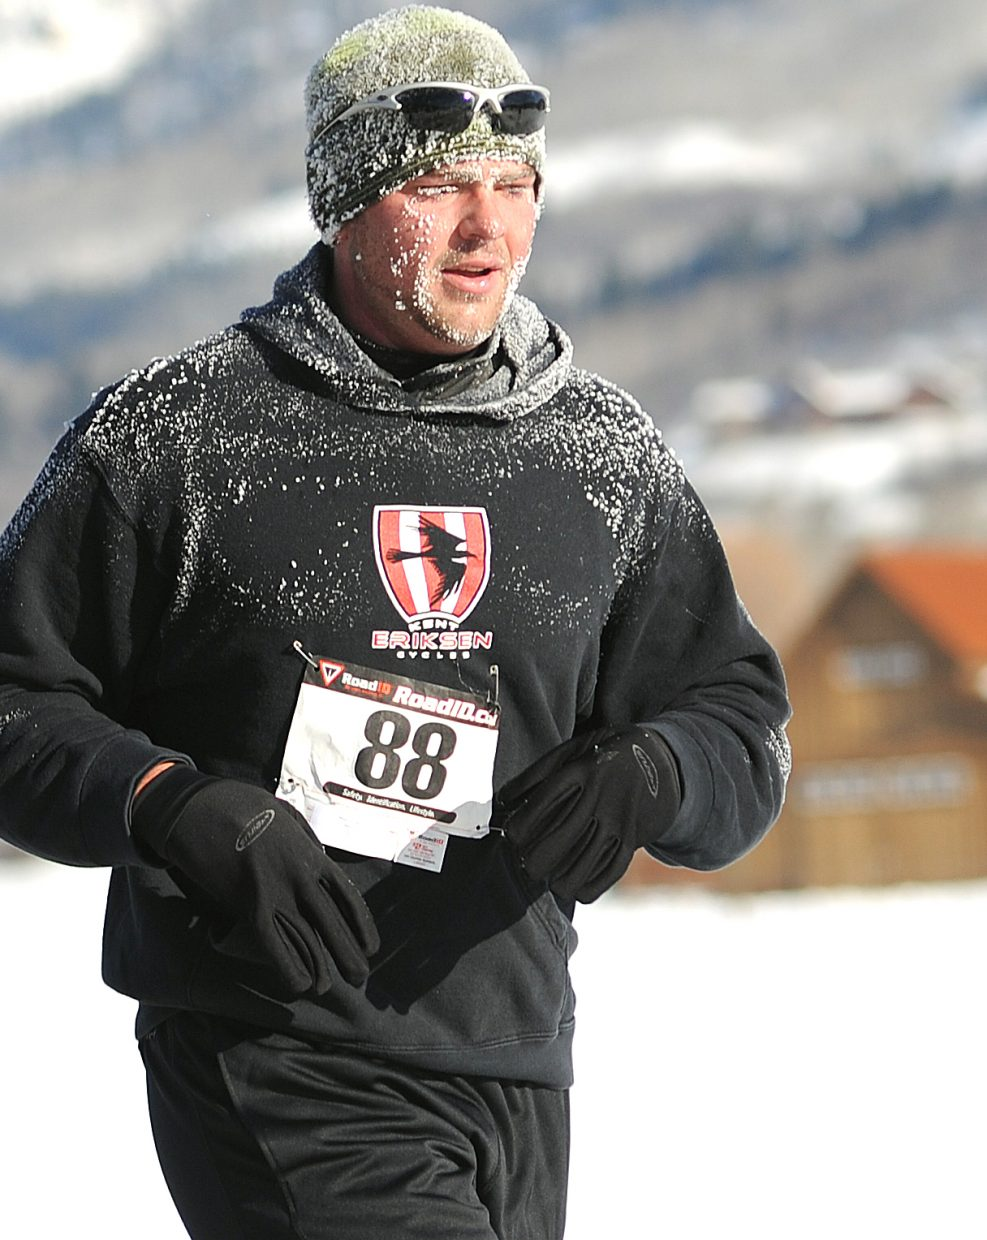 Max Leidigh runs in Thursday's Turkey Trot in Steamboat Springs.